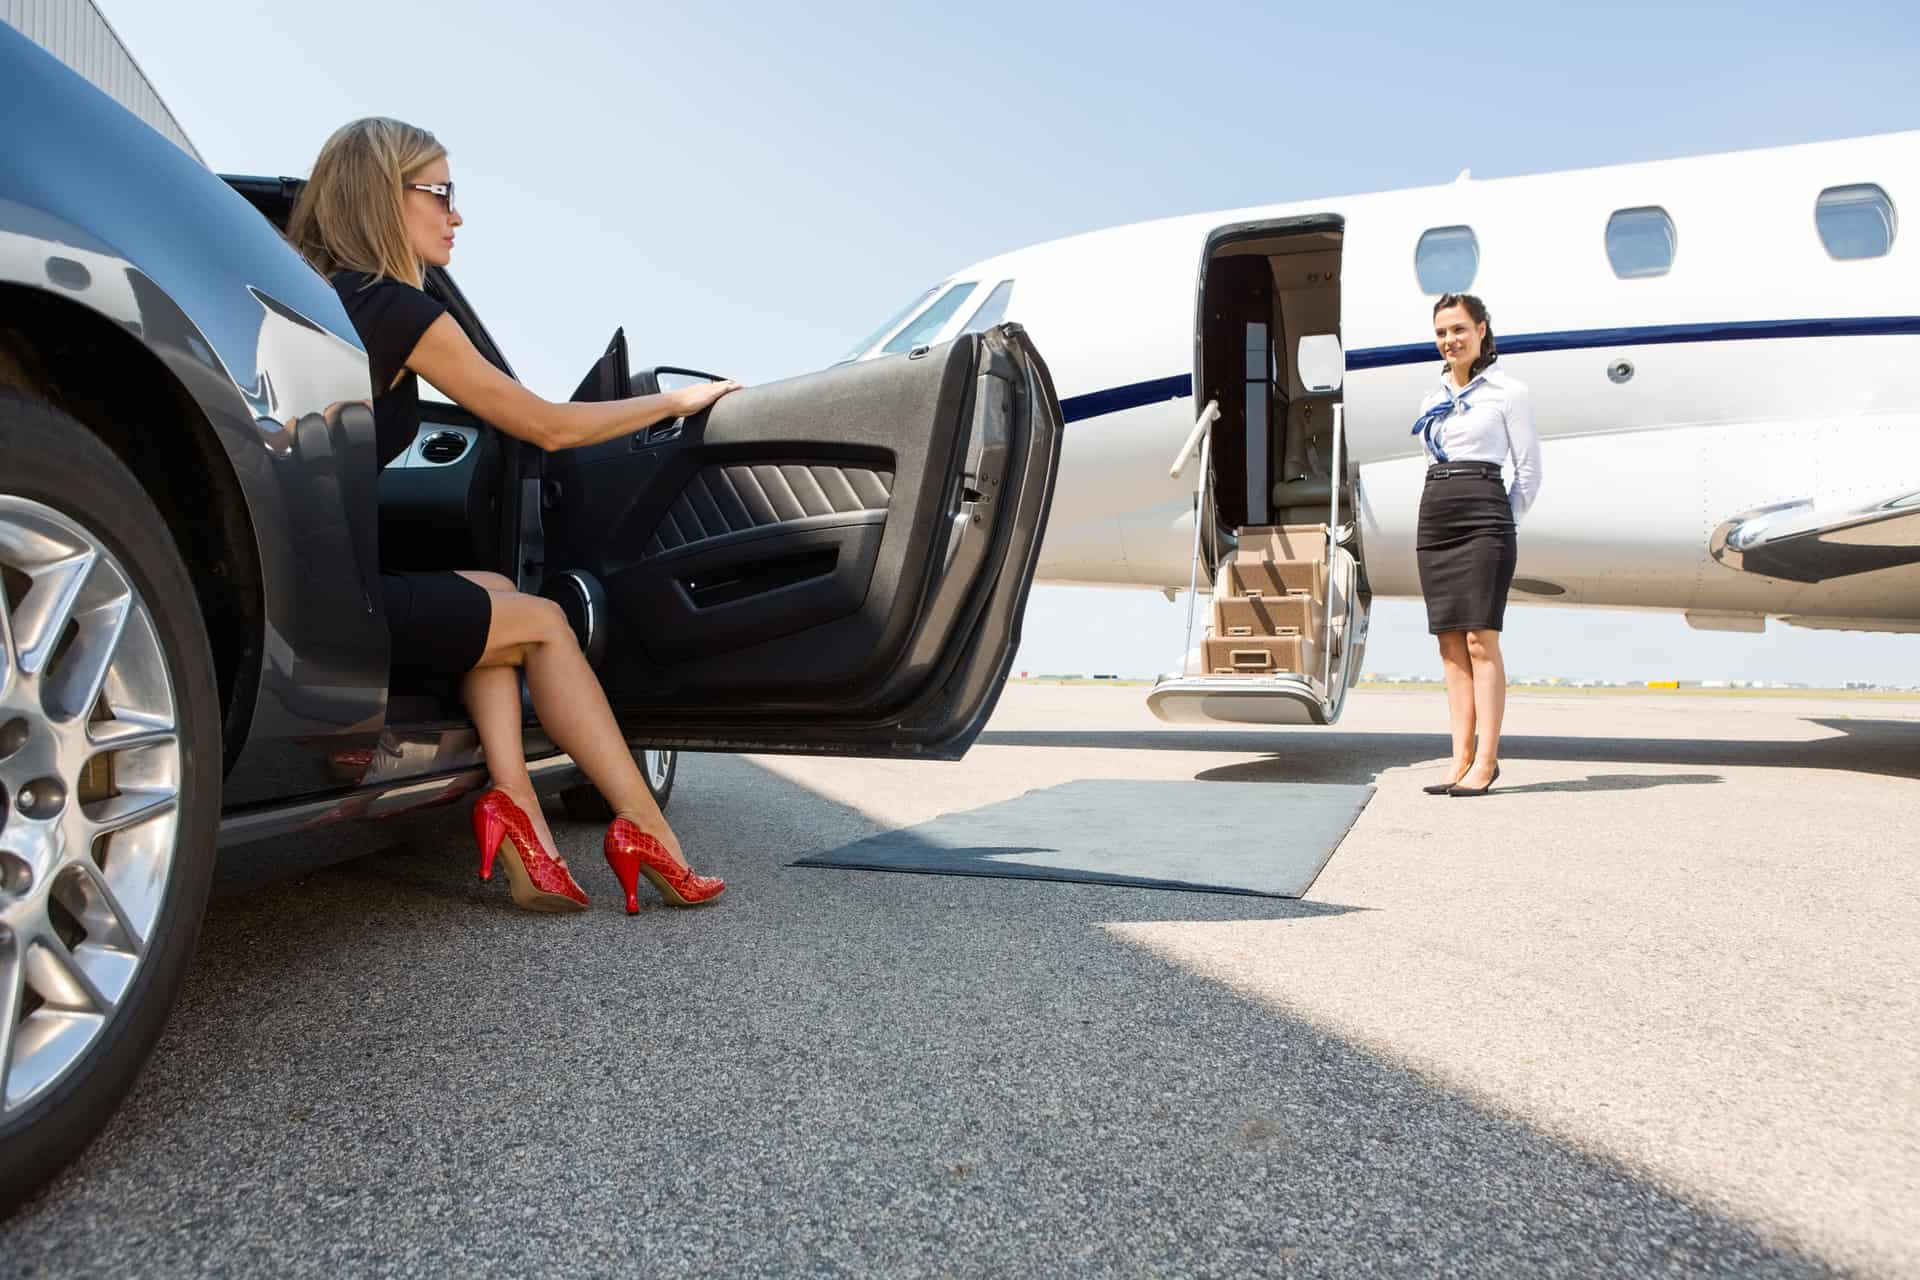 Luksus rejser Wealthy Woman Stepping Out Of Car At Terminal